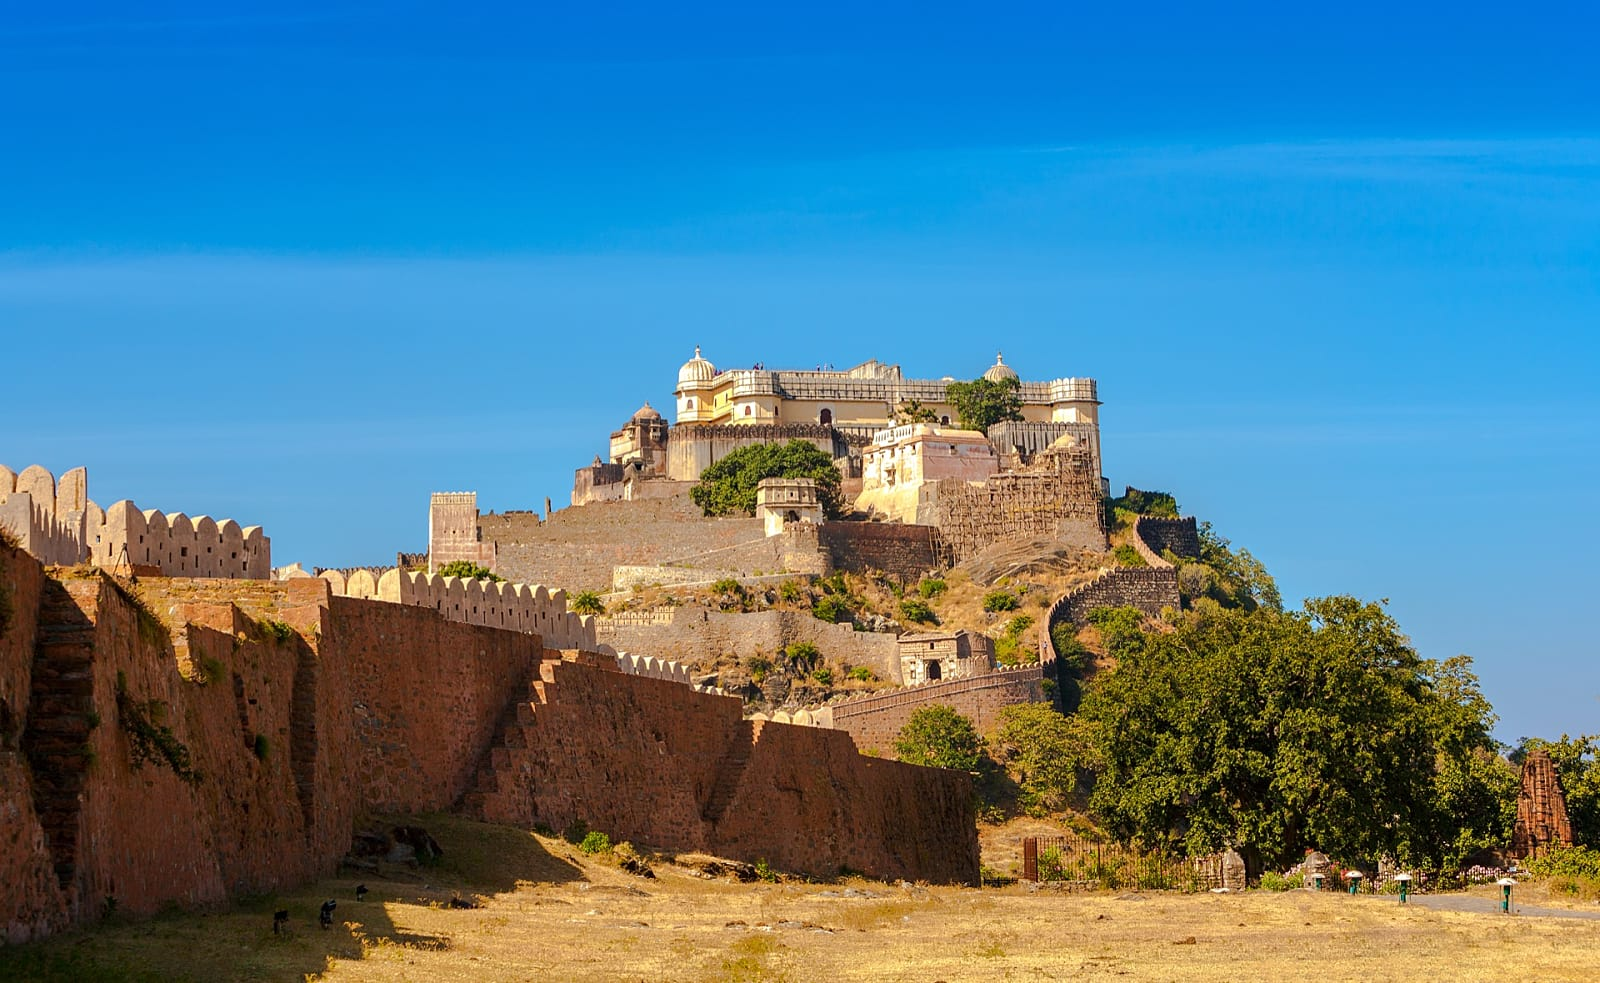 Travel Guide to Kumbhalgarh Fort - The Great Wall of India